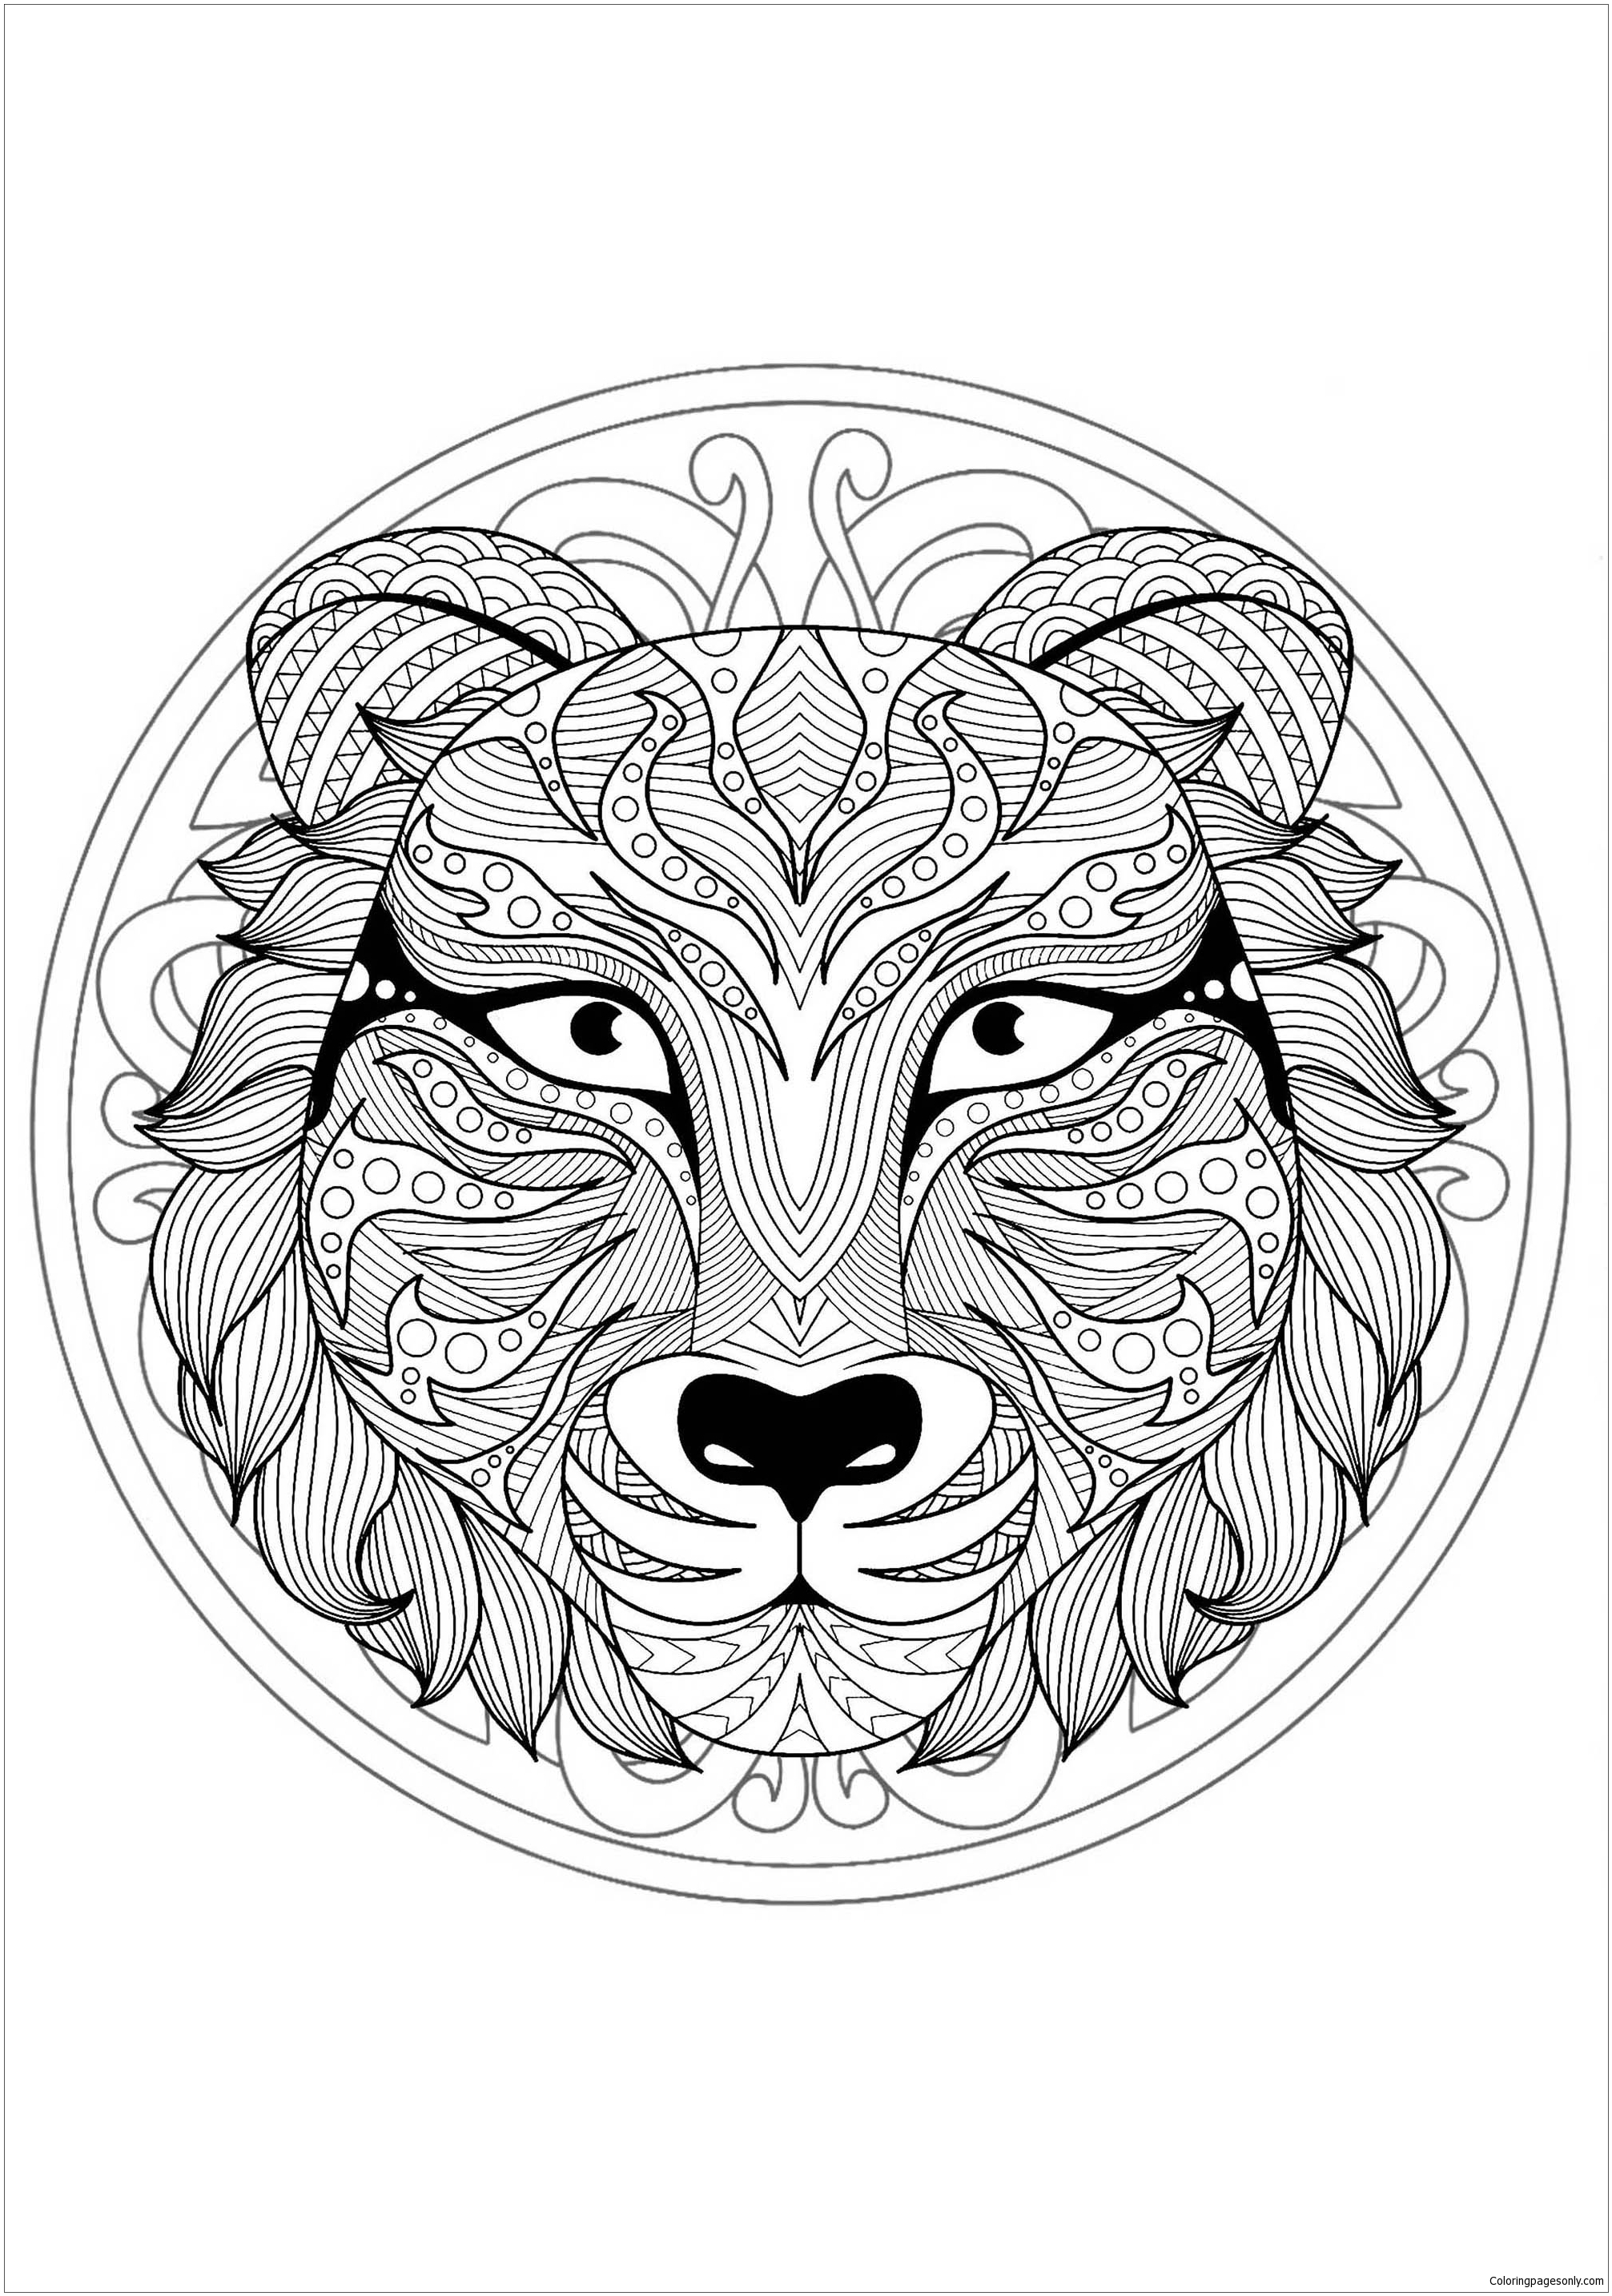 Mandala With Tiger Head - 1 Coloring Page